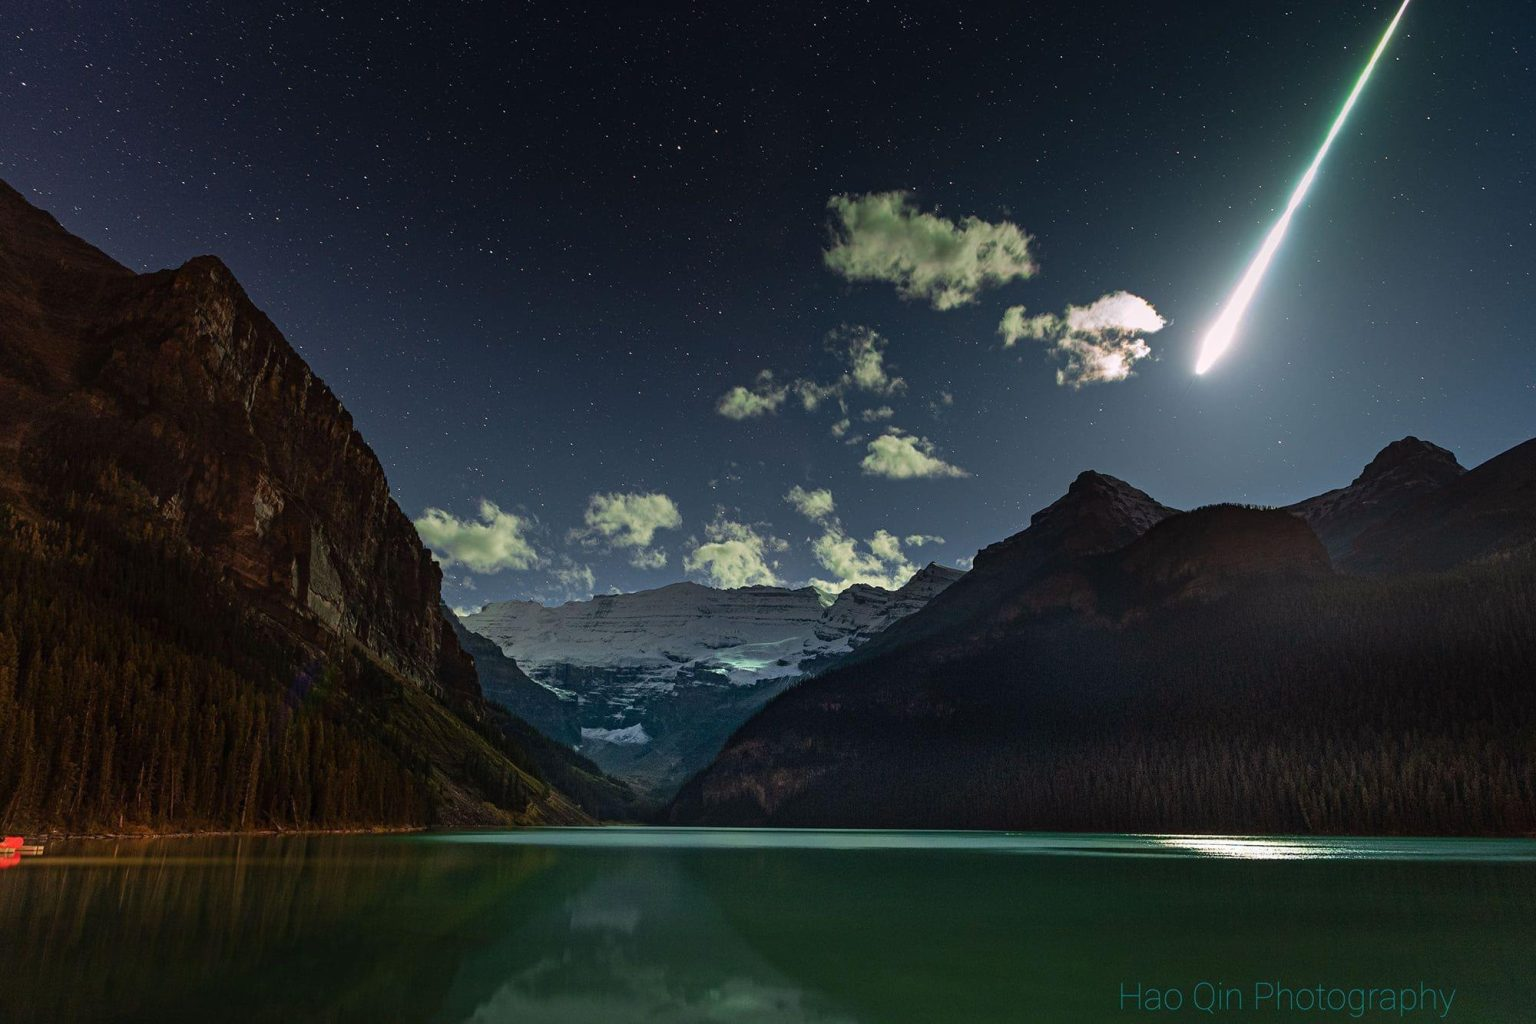 Meteor fireball that exploded over Lake Louise, Canada on October 4, 2021. Picture Hao Qin Photography via Reddit